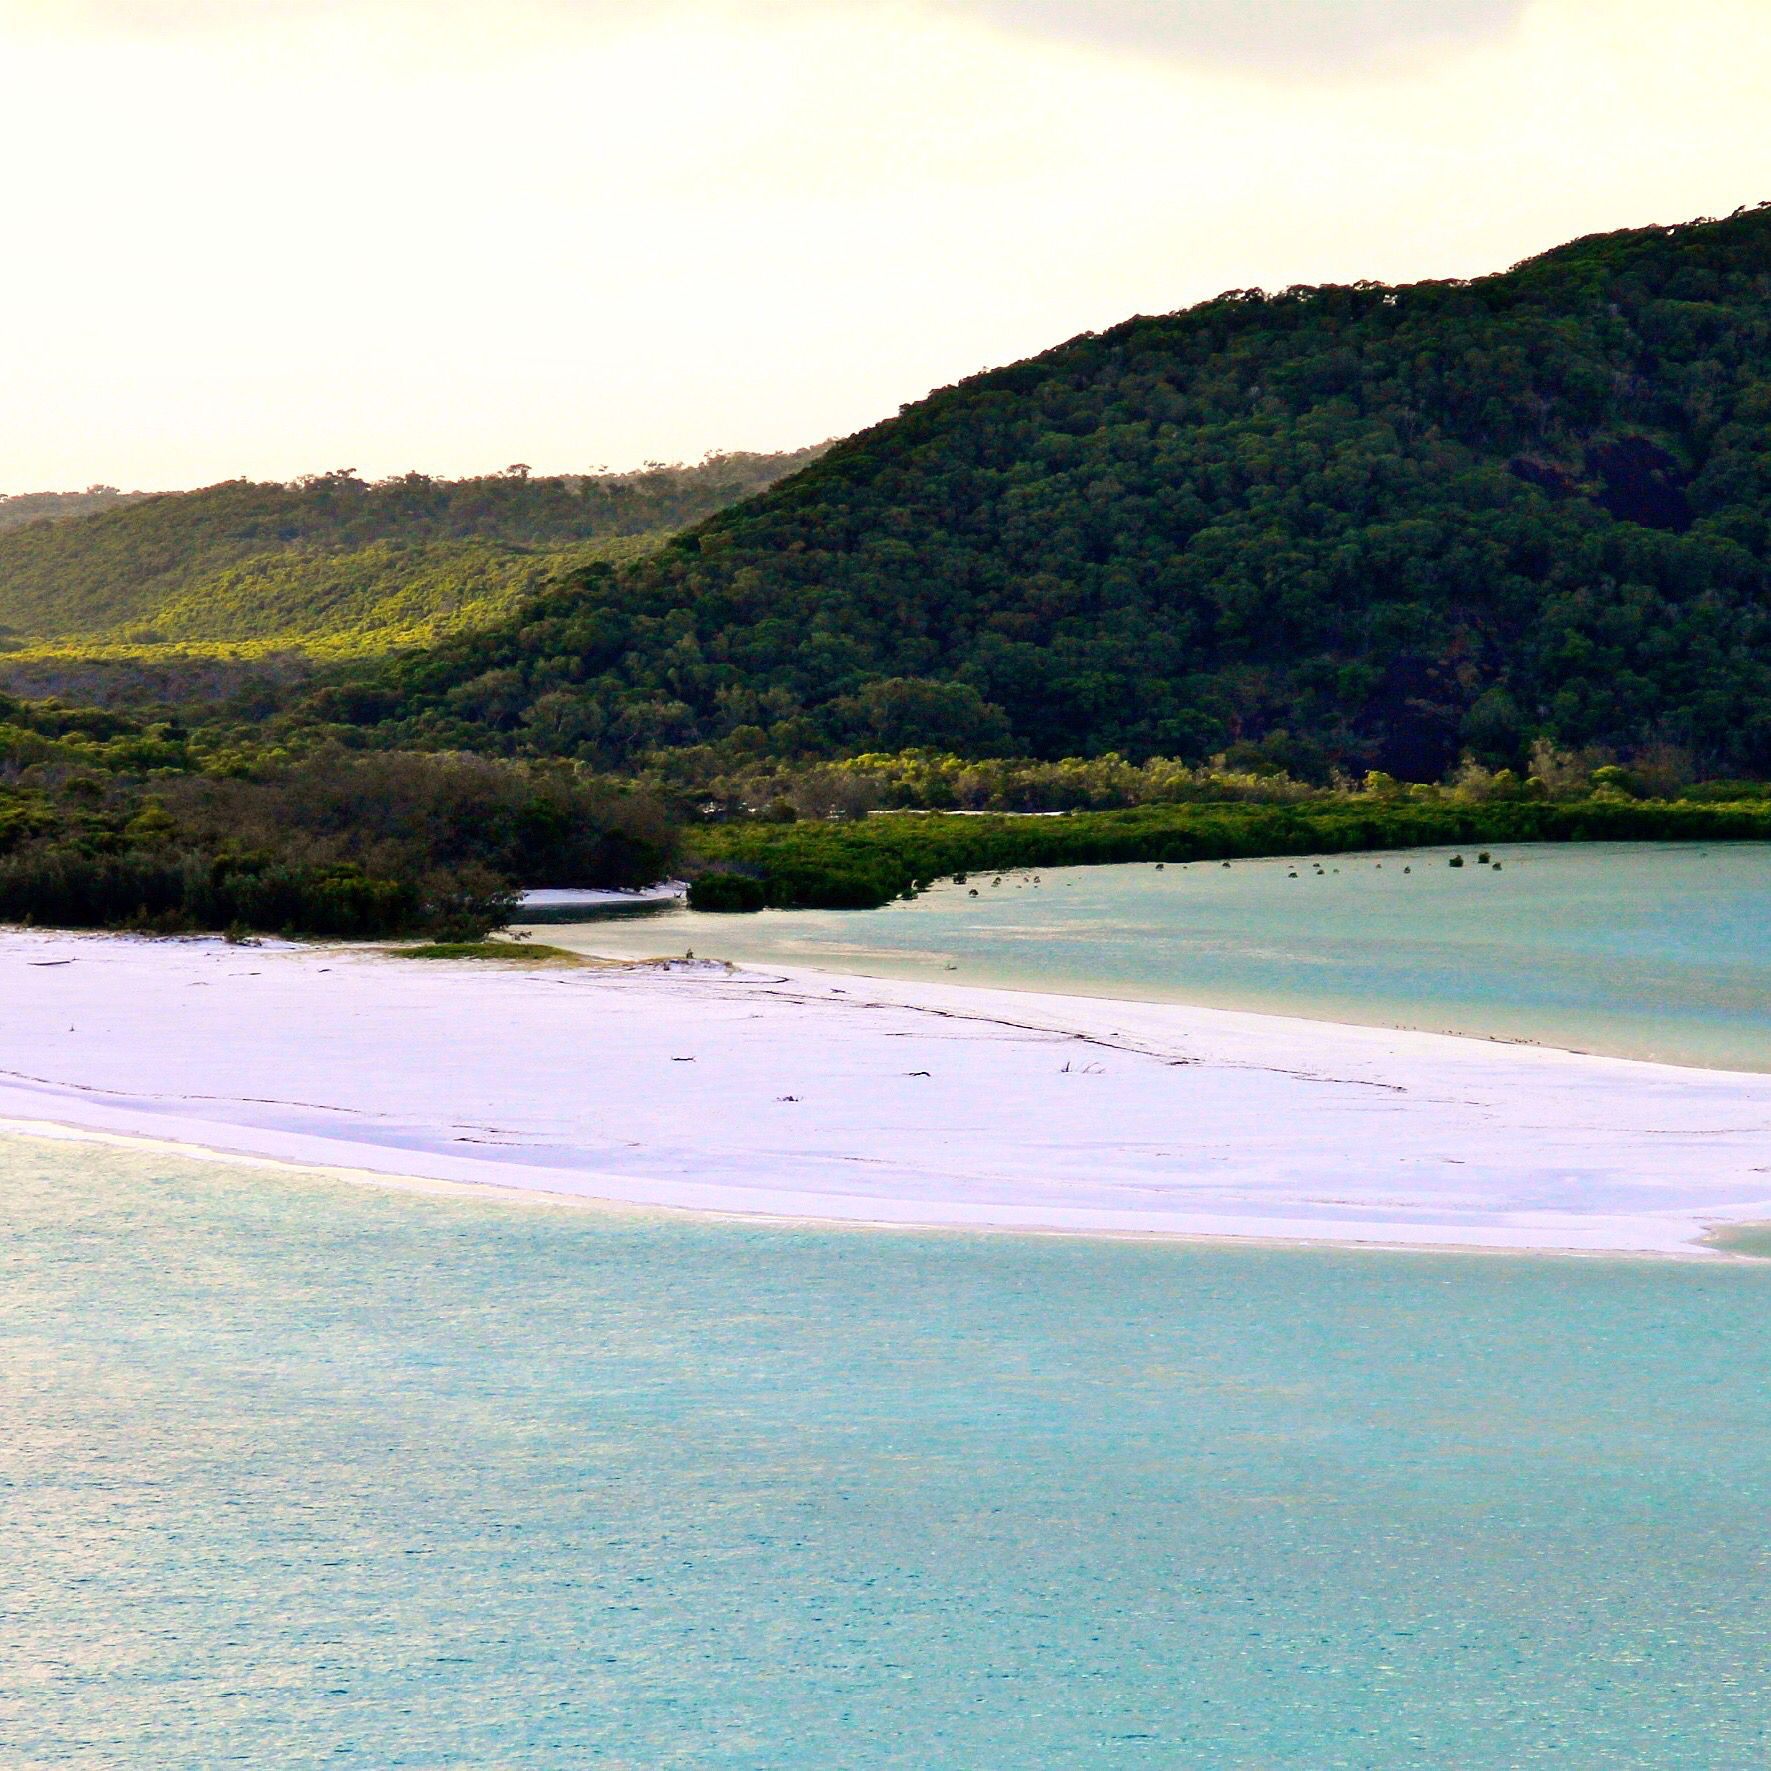 Deserted Island Beach: Deserted Beach That Is Not Accessible And Protected By The